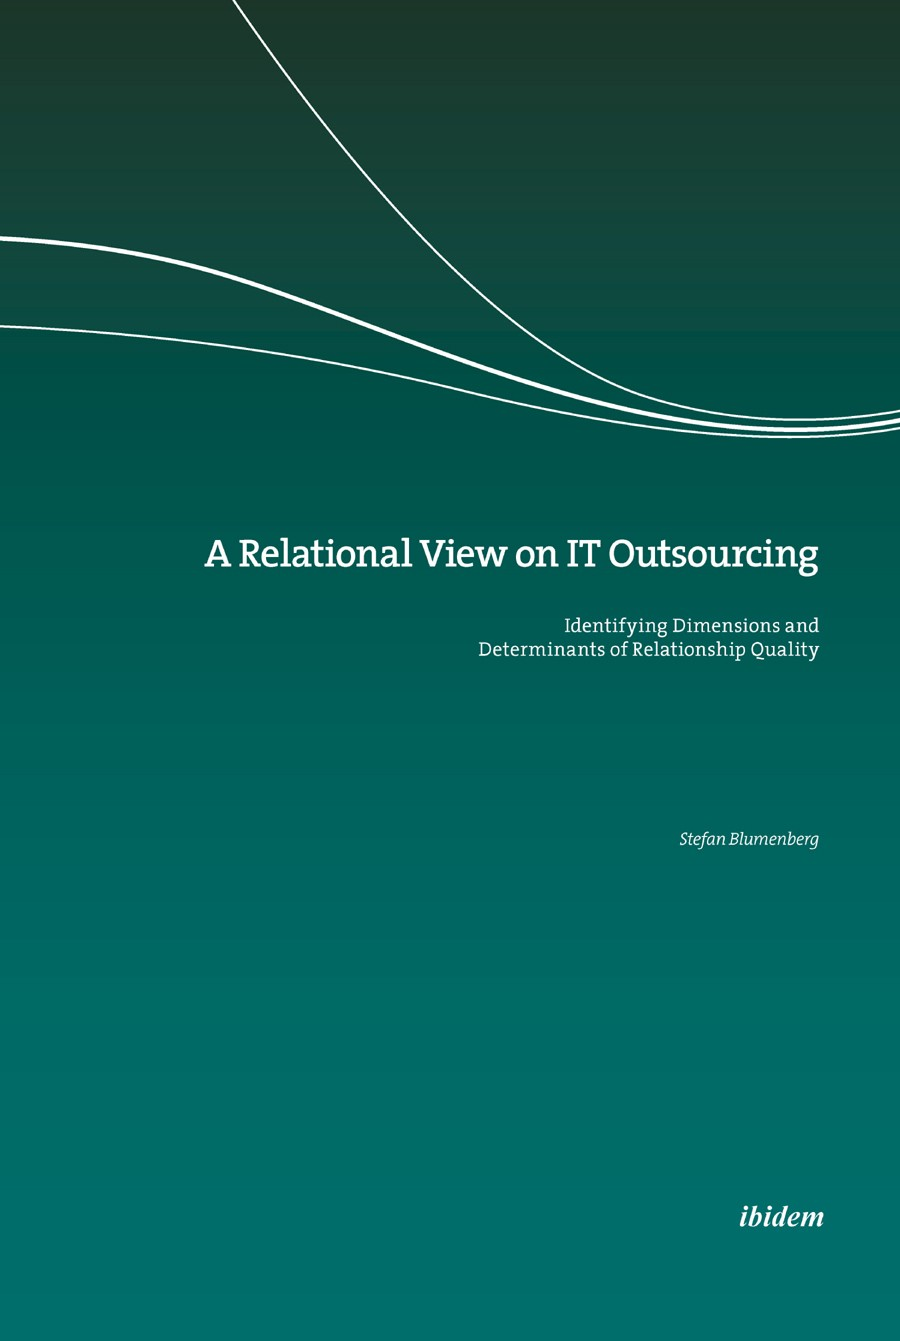 A Relational View on IT Outsourcing